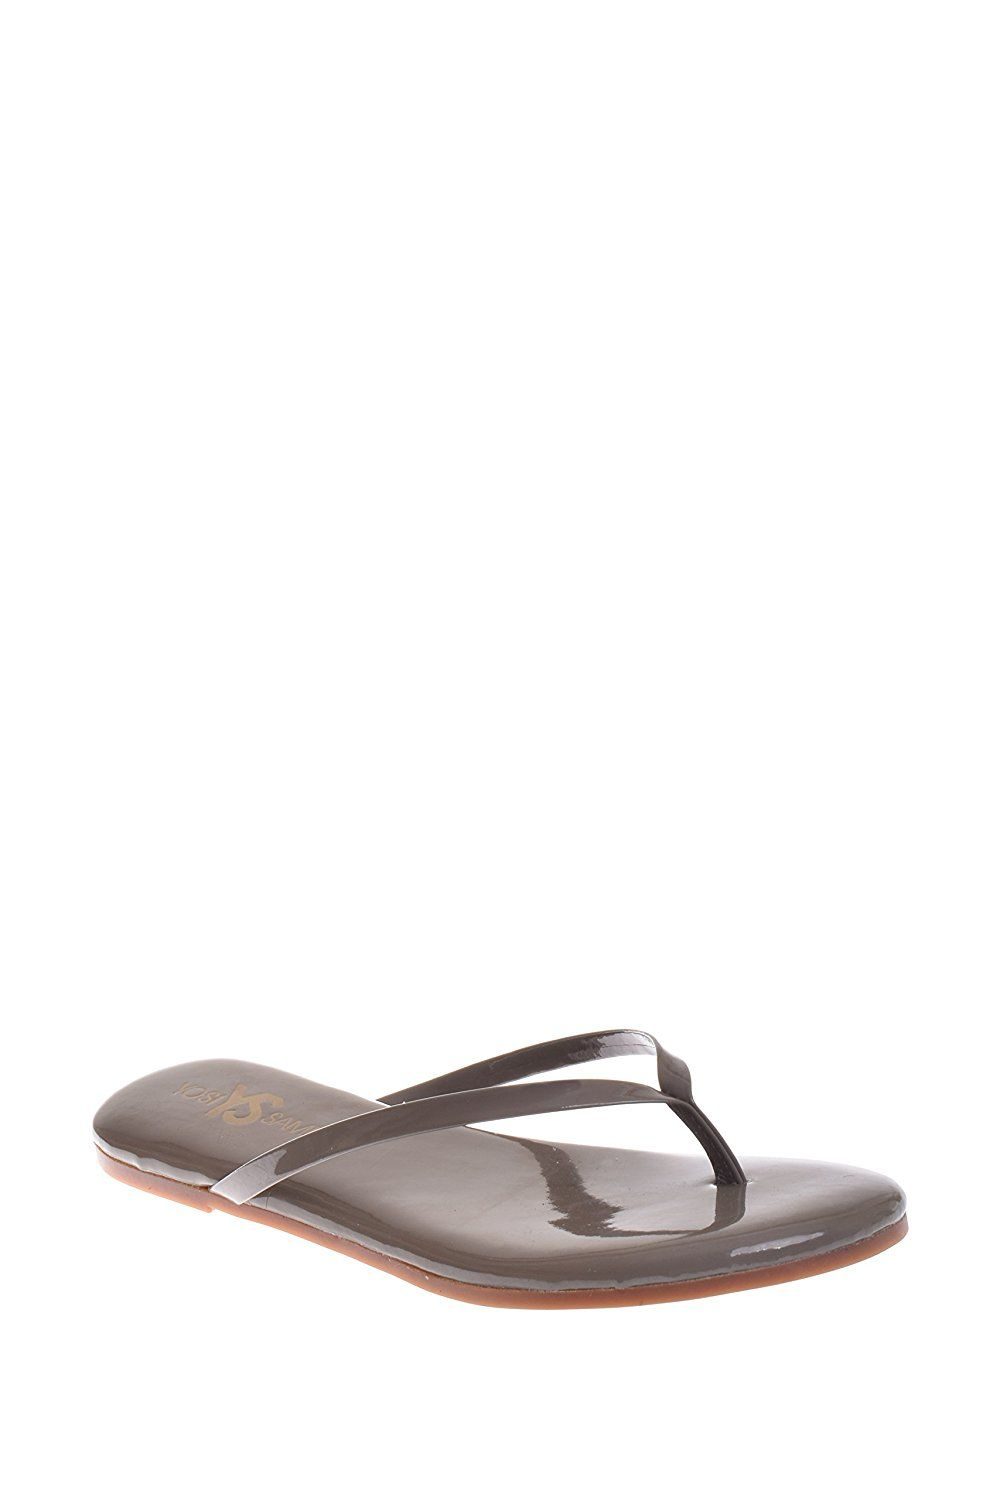 52c9d24be1714 Yosi Samra Patent Flip Flop Sandal - Taupe    Be sure to check out this